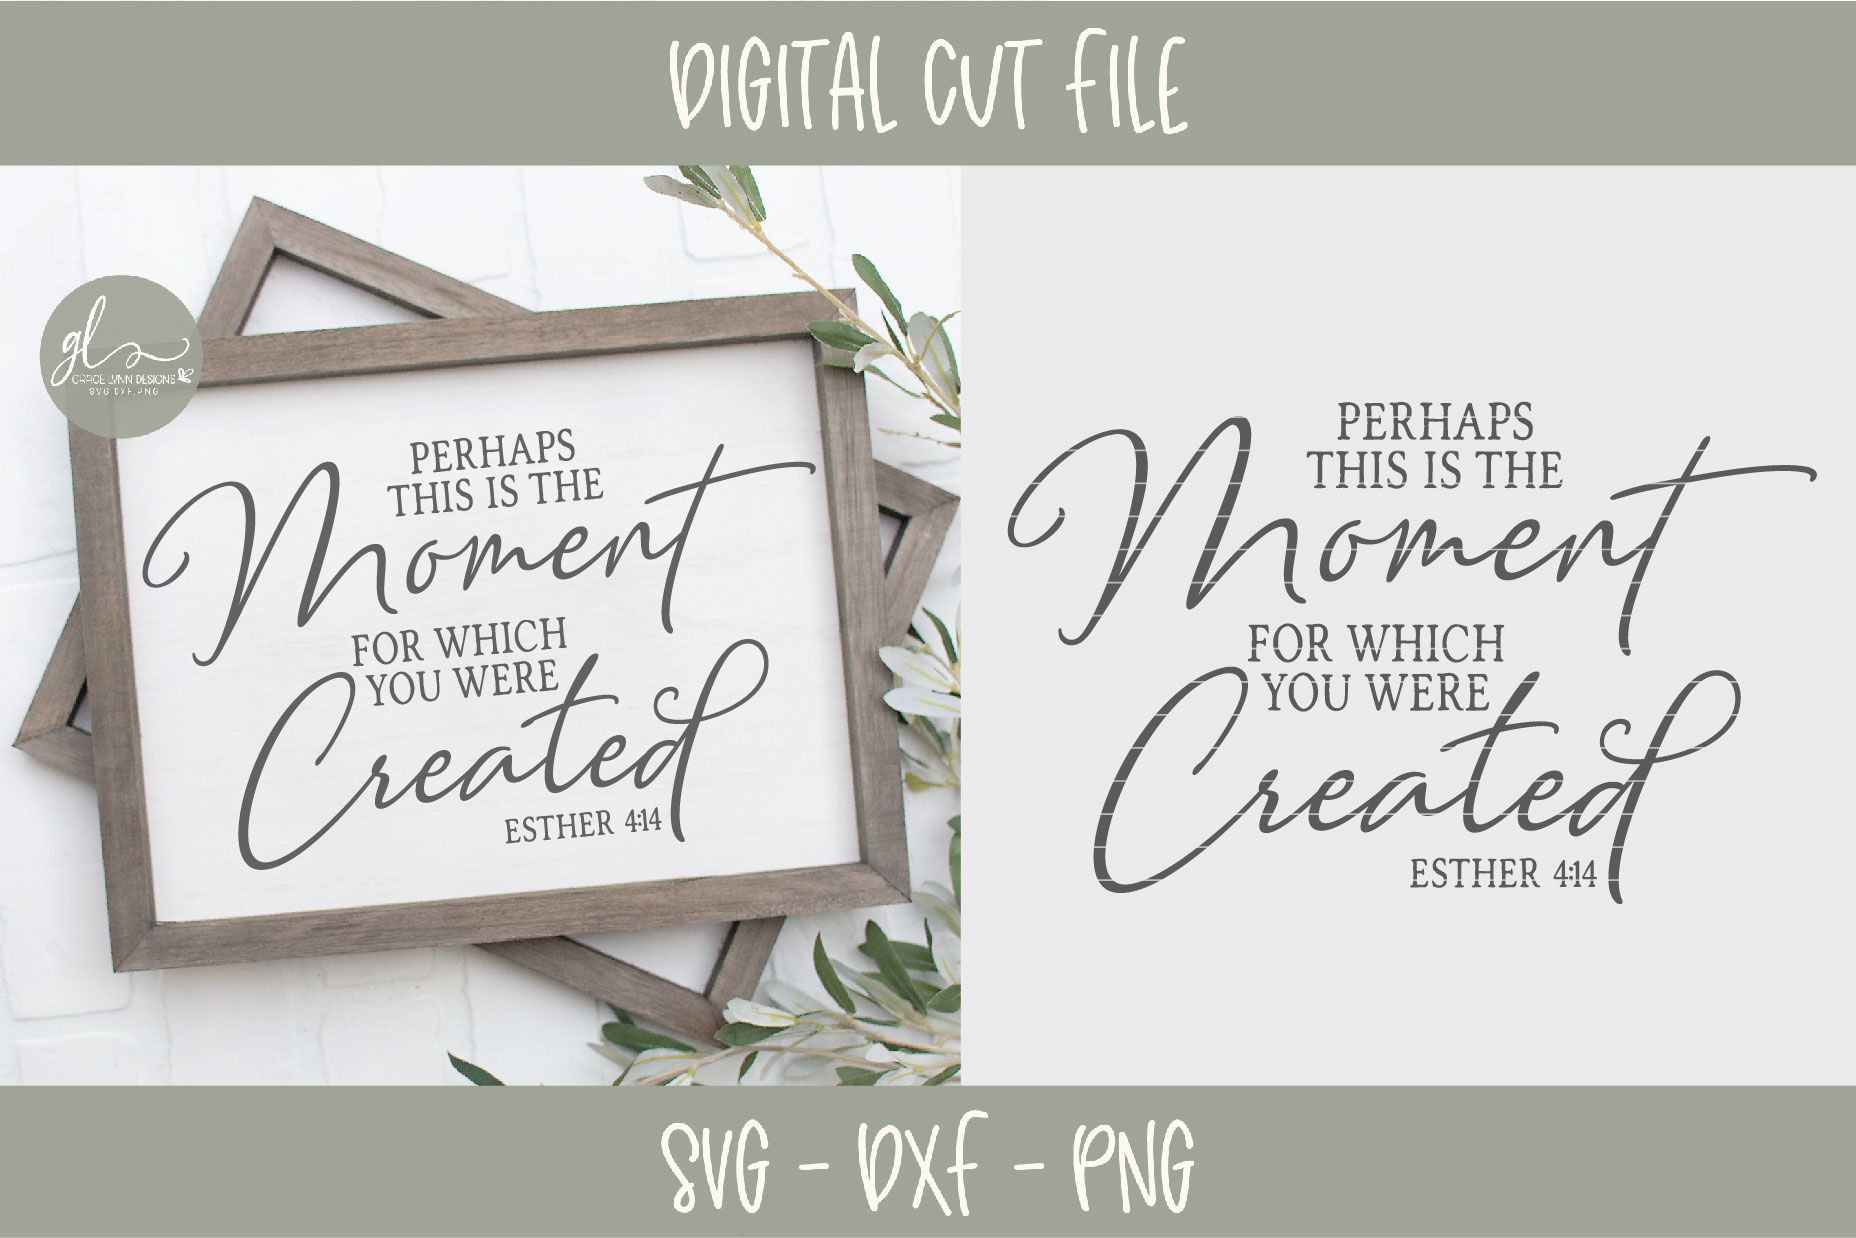 Perhaps This The Moment For Which You Were Created - SVG example image 2